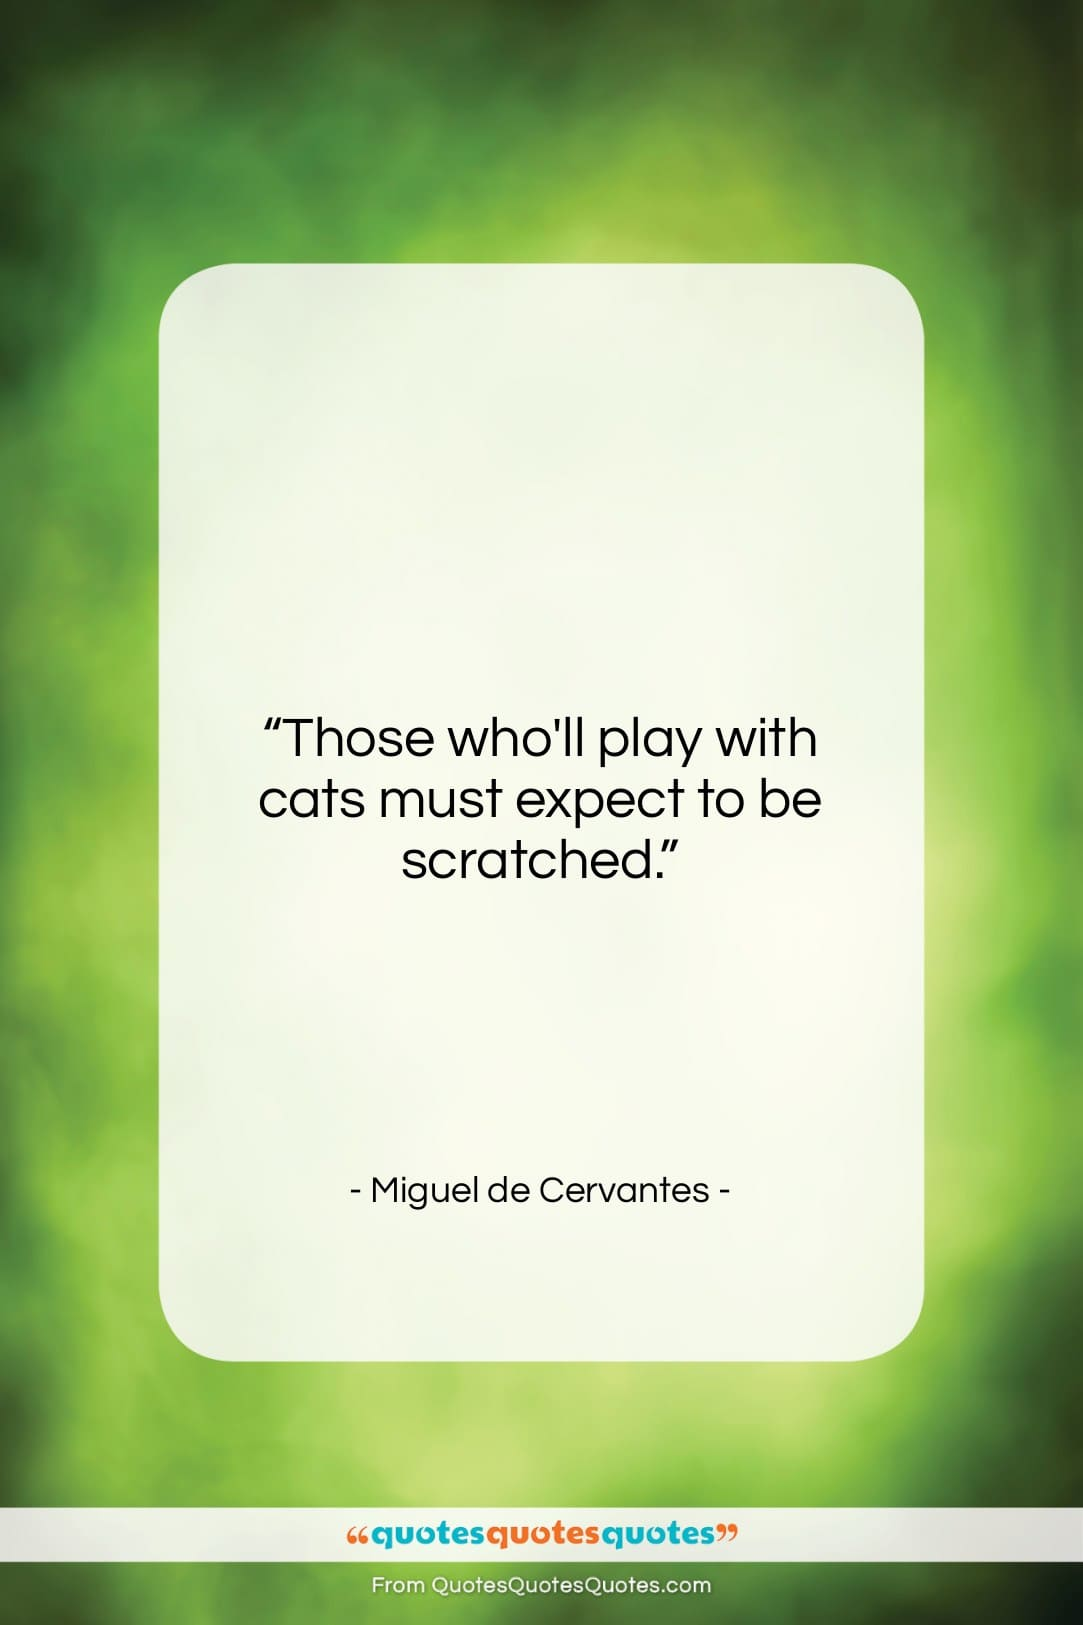 """Miguel de Cervantes quote: """"Those who'll play with cats must expect…""""- at QuotesQuotesQuotes.com"""